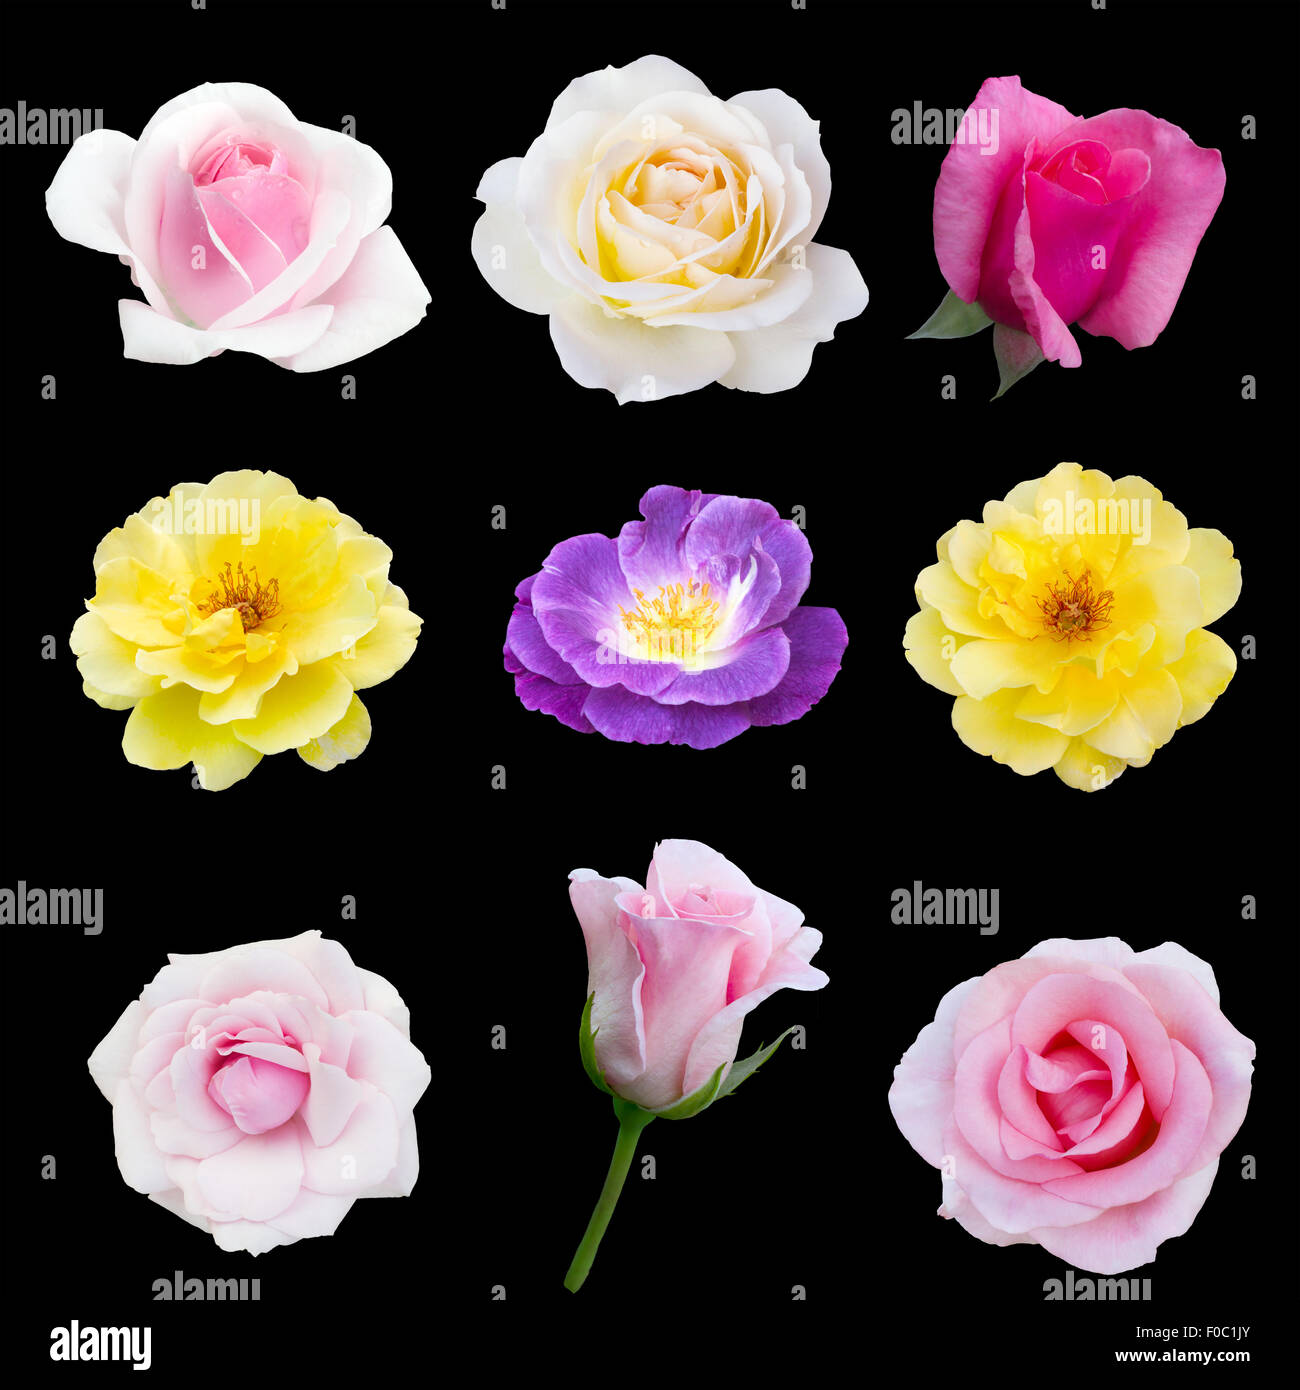 collage of nine roses - Stock Image